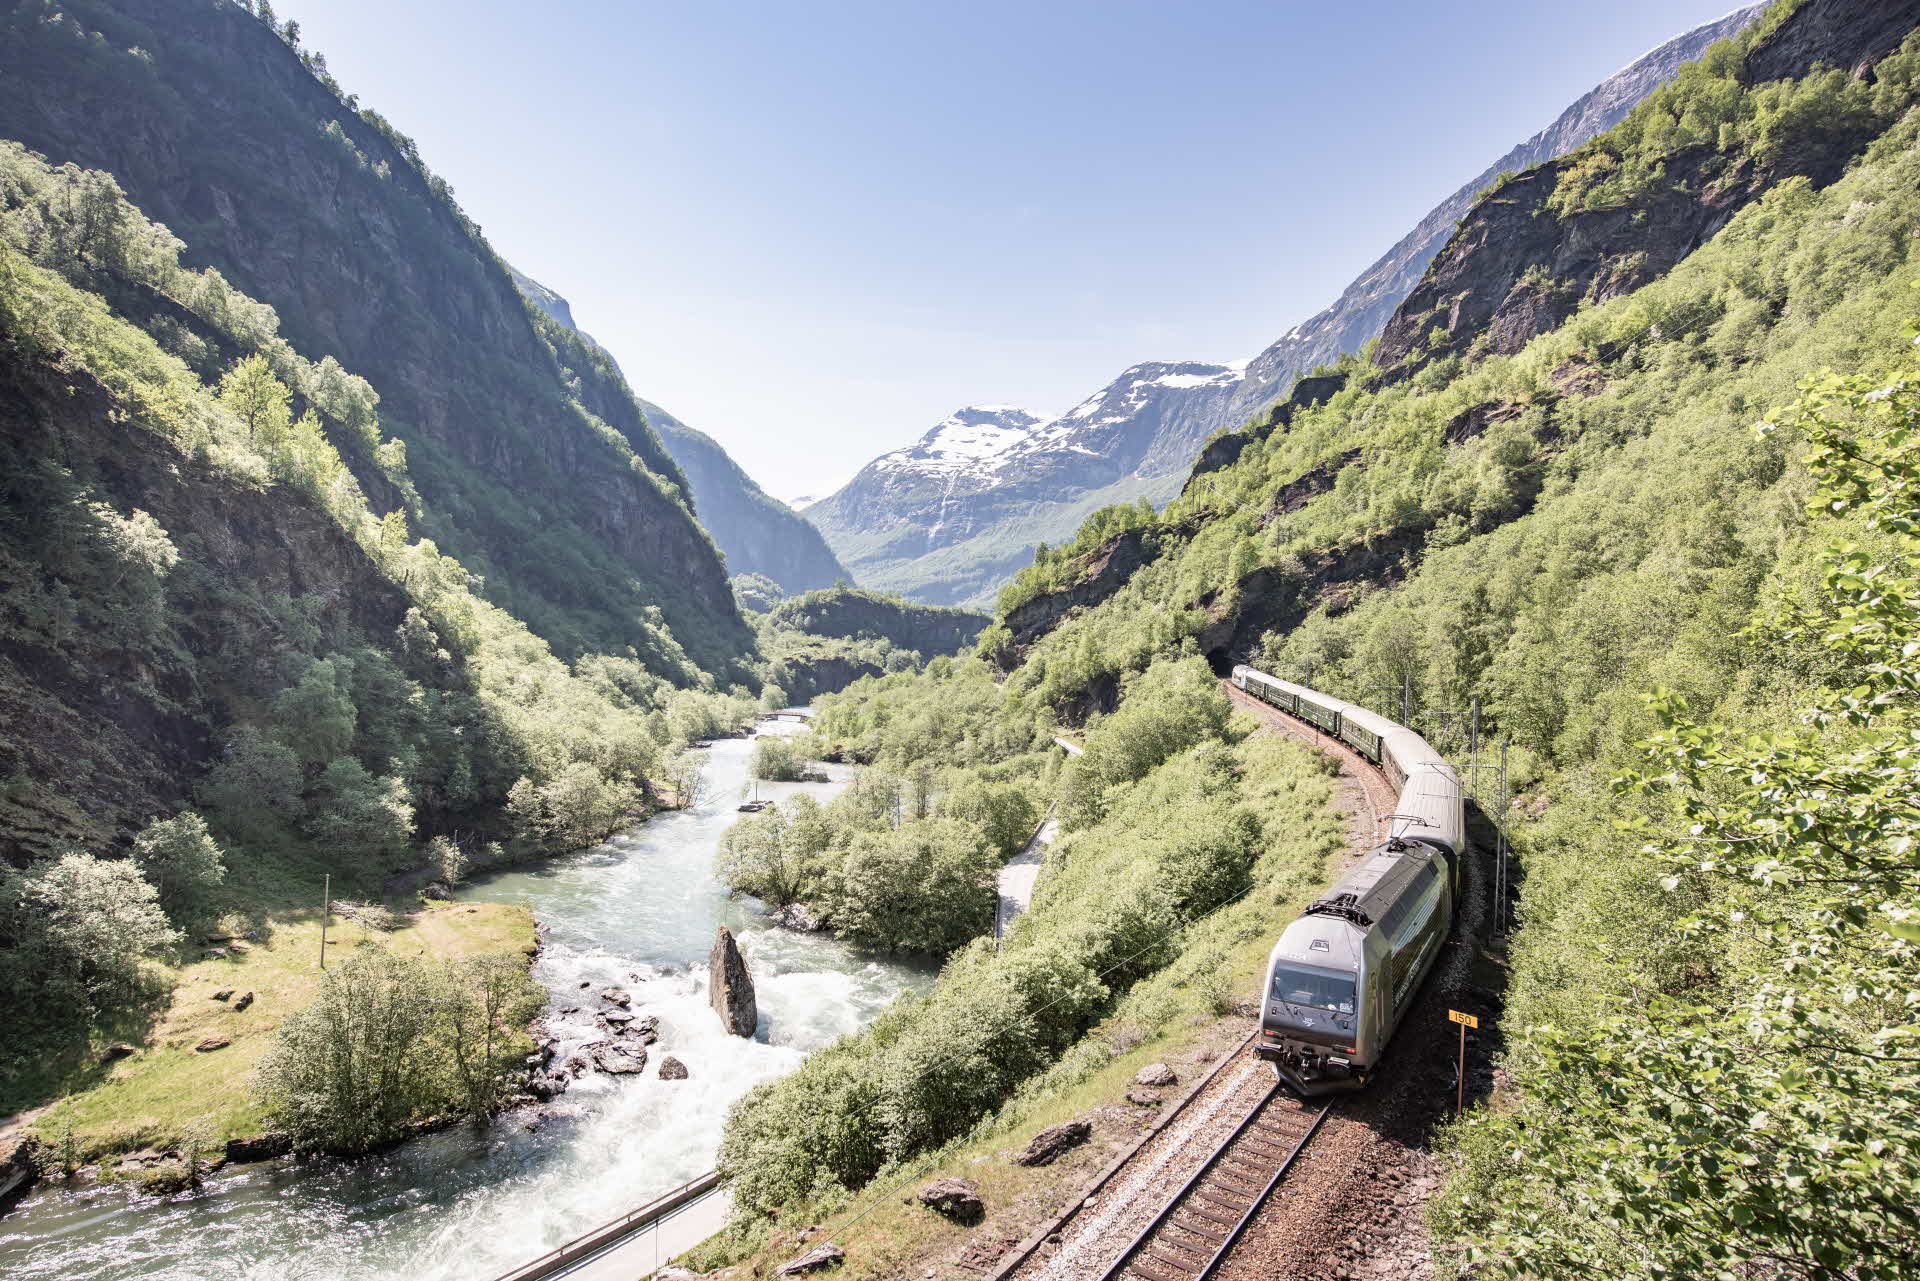 The Flåm Railway travels past a green valley next to the river